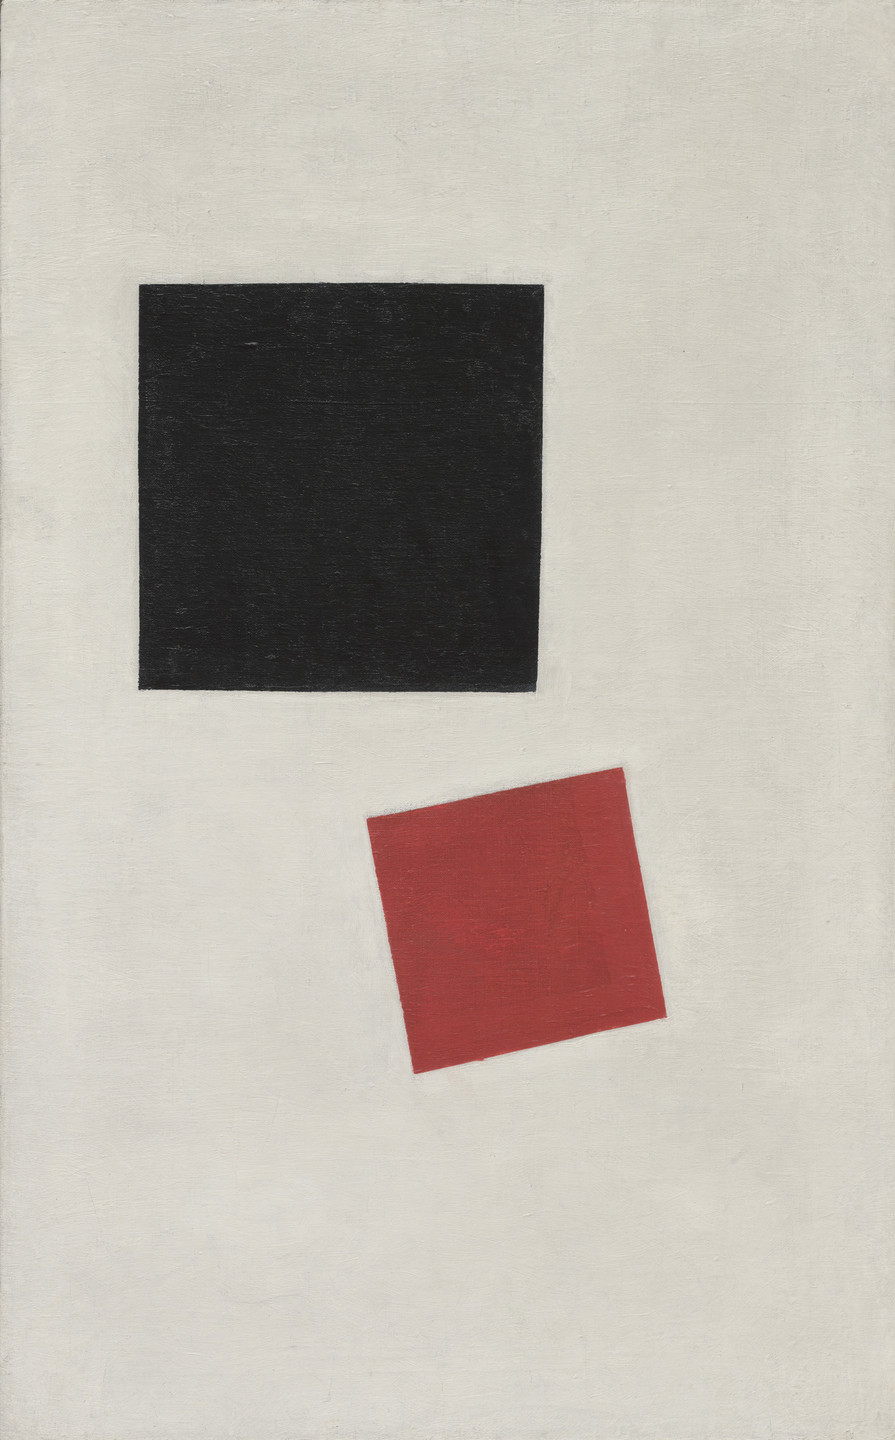 Kazimir Malevich. Painterly Realism of a Boy with a Knapsack - Color Masses in the Fourth Dimension. 1915